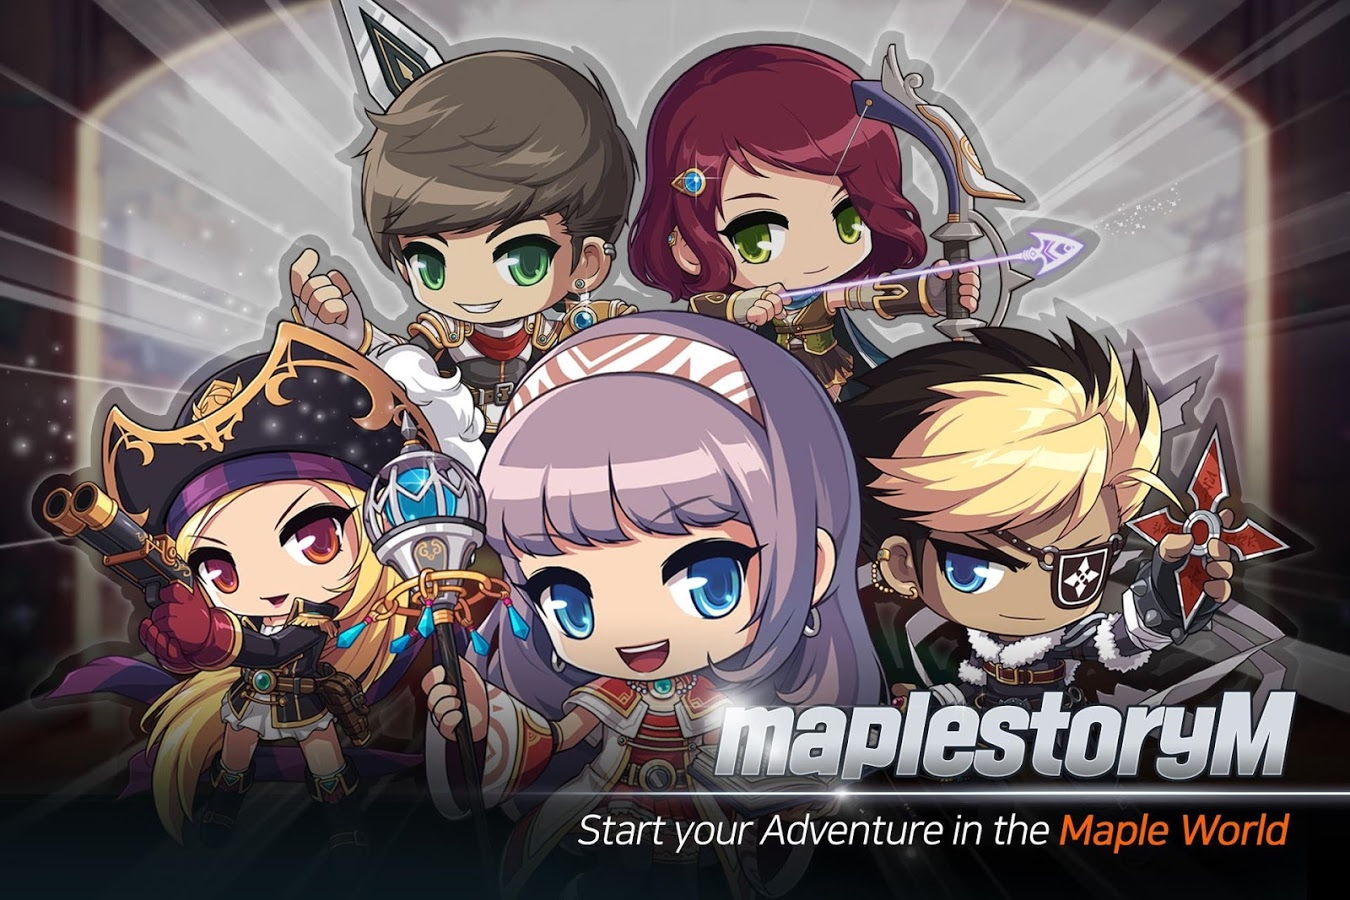 MapleStory M is available on the Play Store as an English language